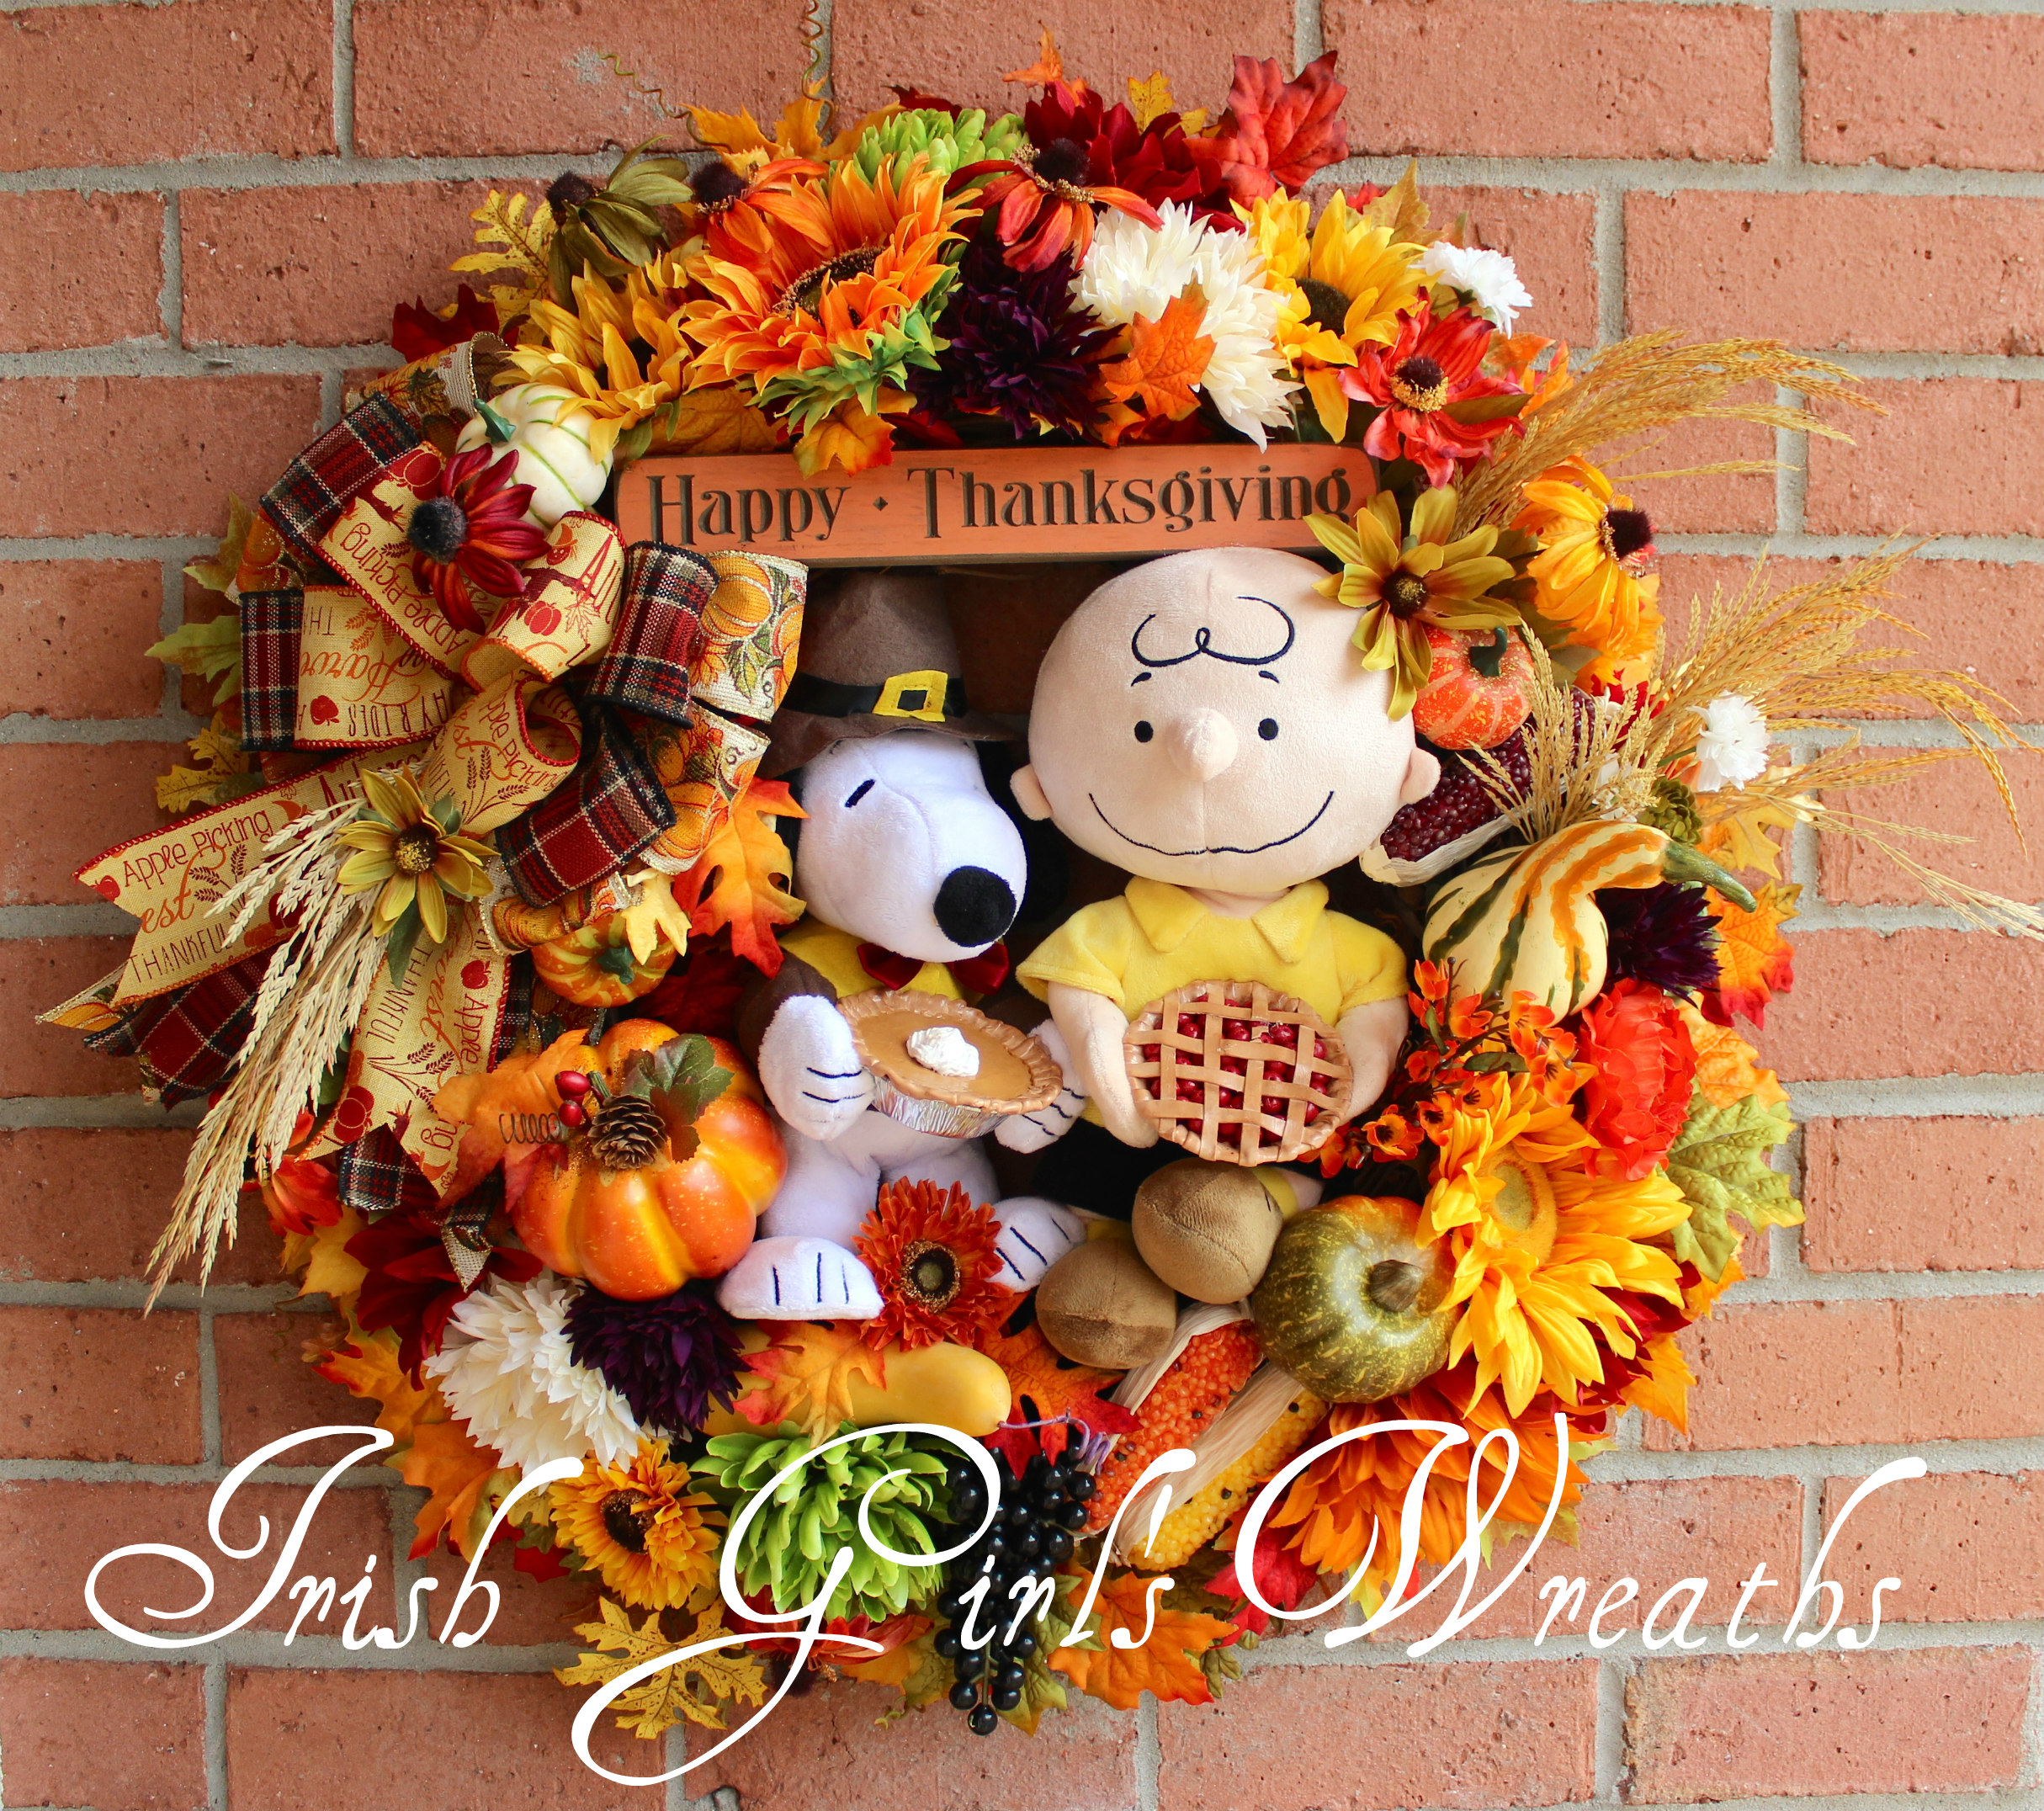 Charlie Brown & SnoopyThanksgiving Wreath